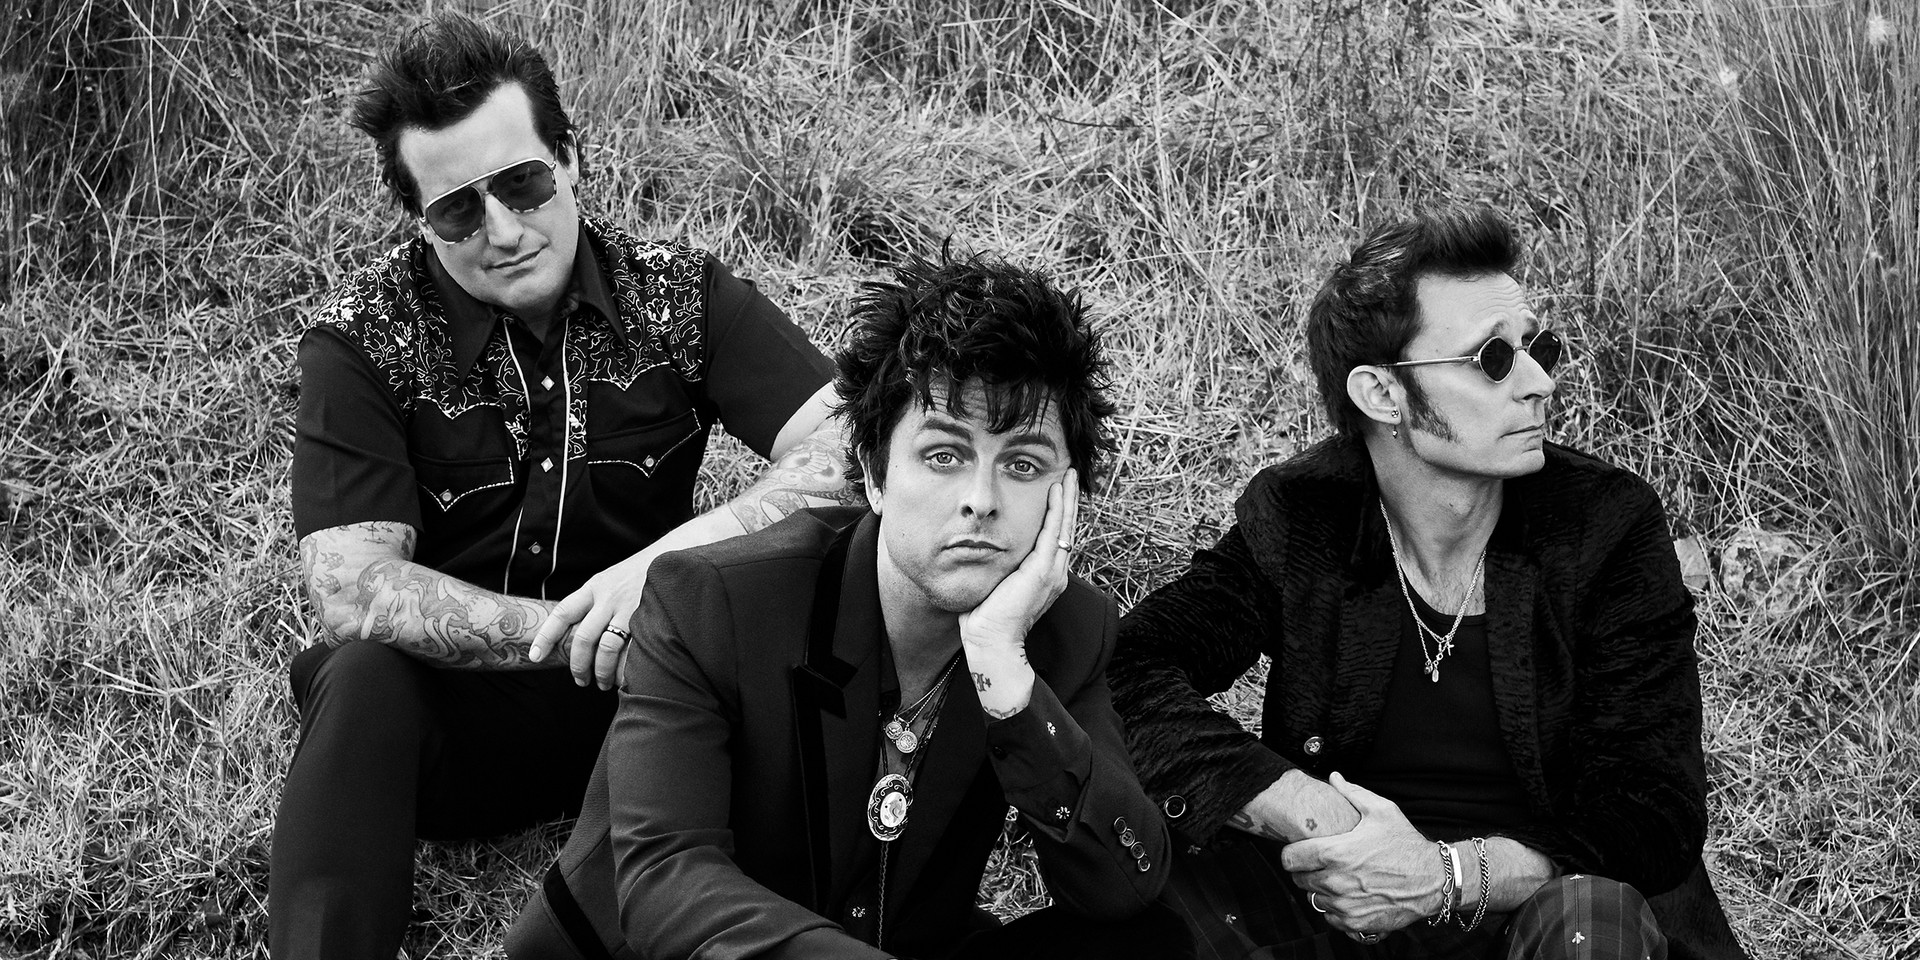 Ticketing details for Green Day's Singapore concert have been announced